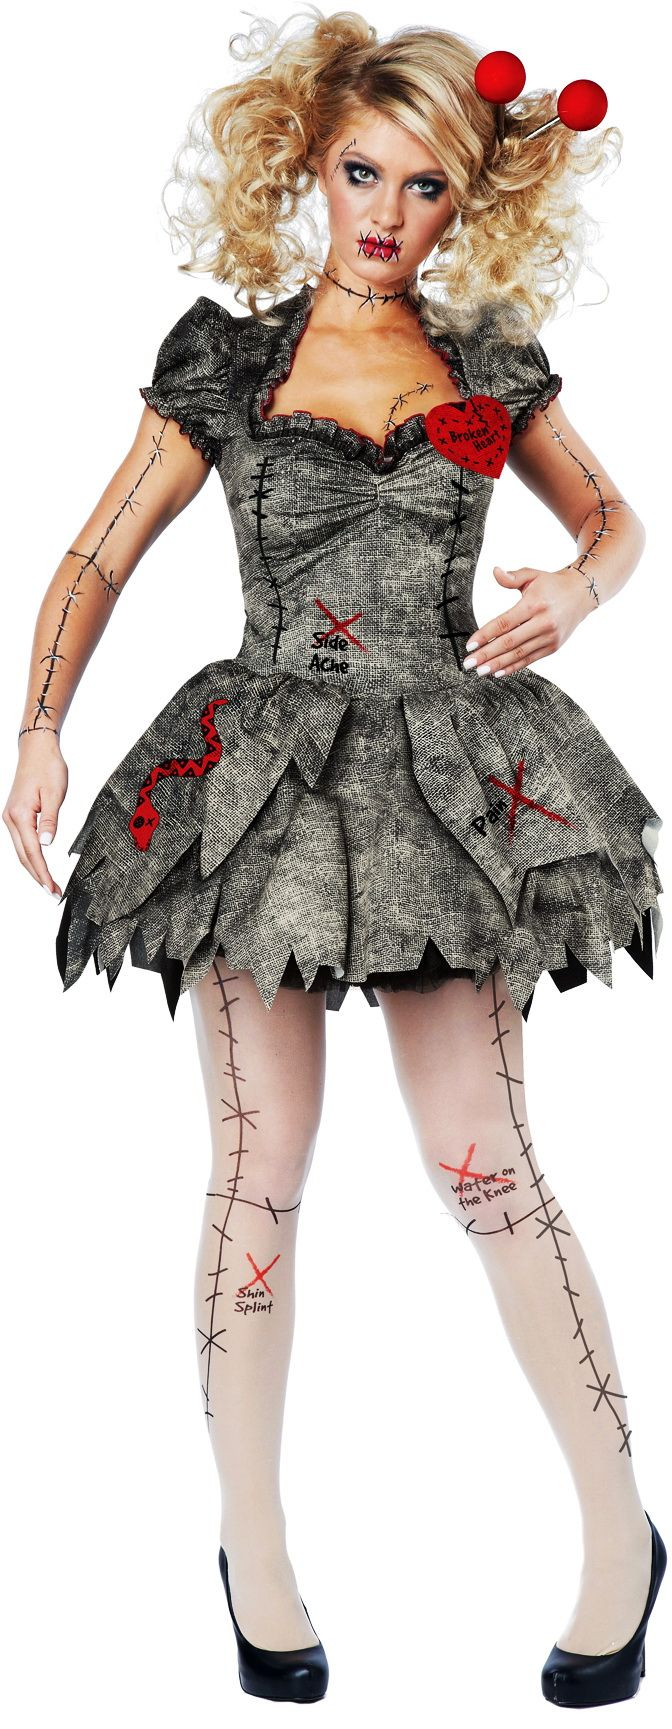 Creepy Pins & Needles Voodoo Outfit Halloween Rag Doll Costume Adult Women